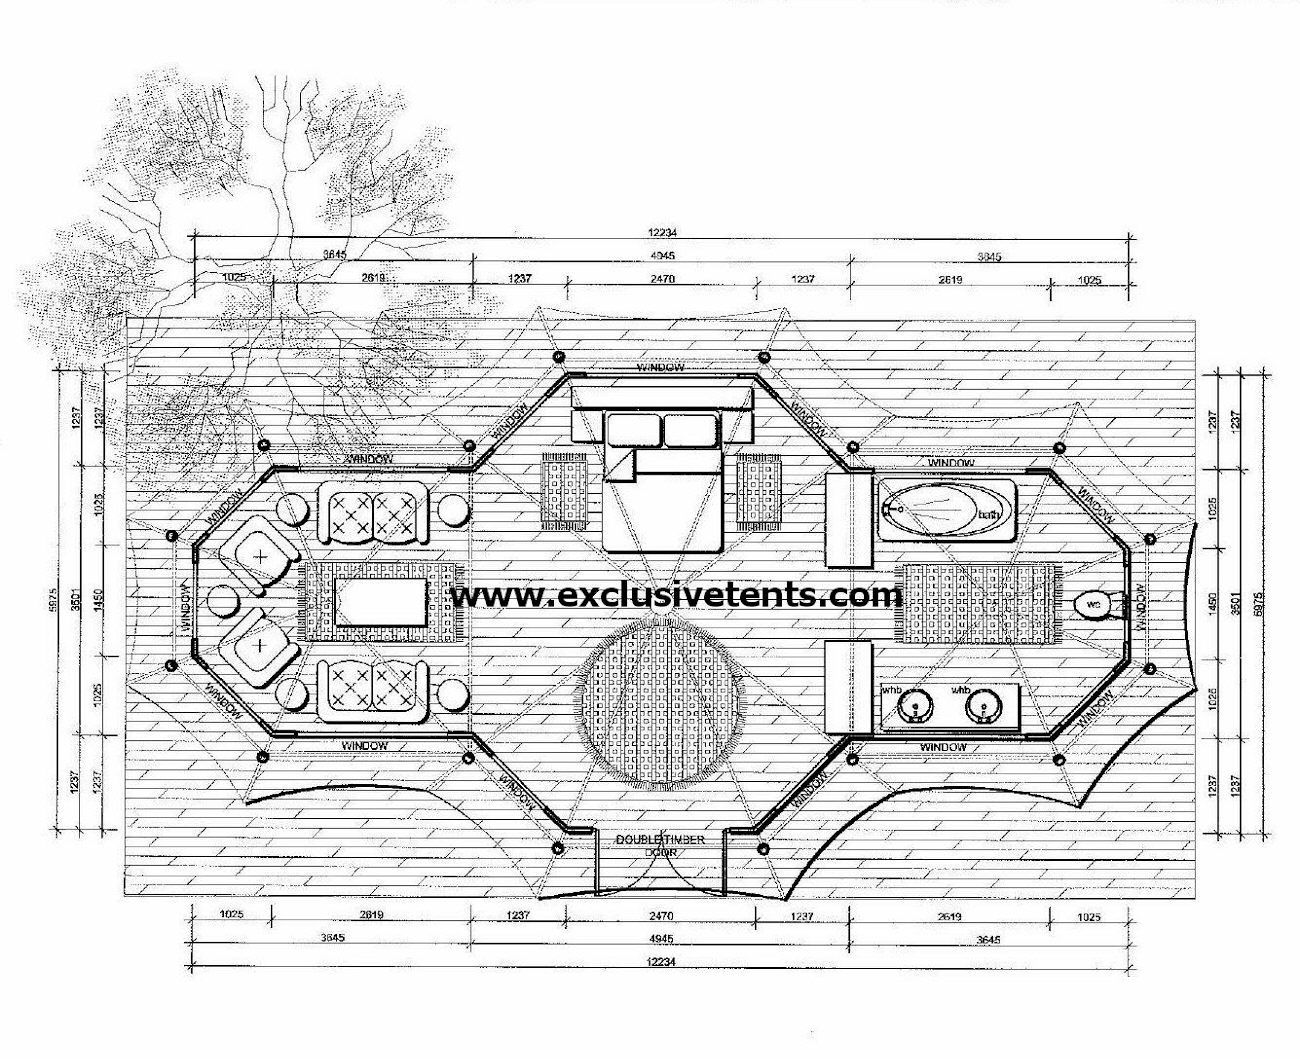 tree house floor plan tree house floor plans google search plan - House Plans With Tree